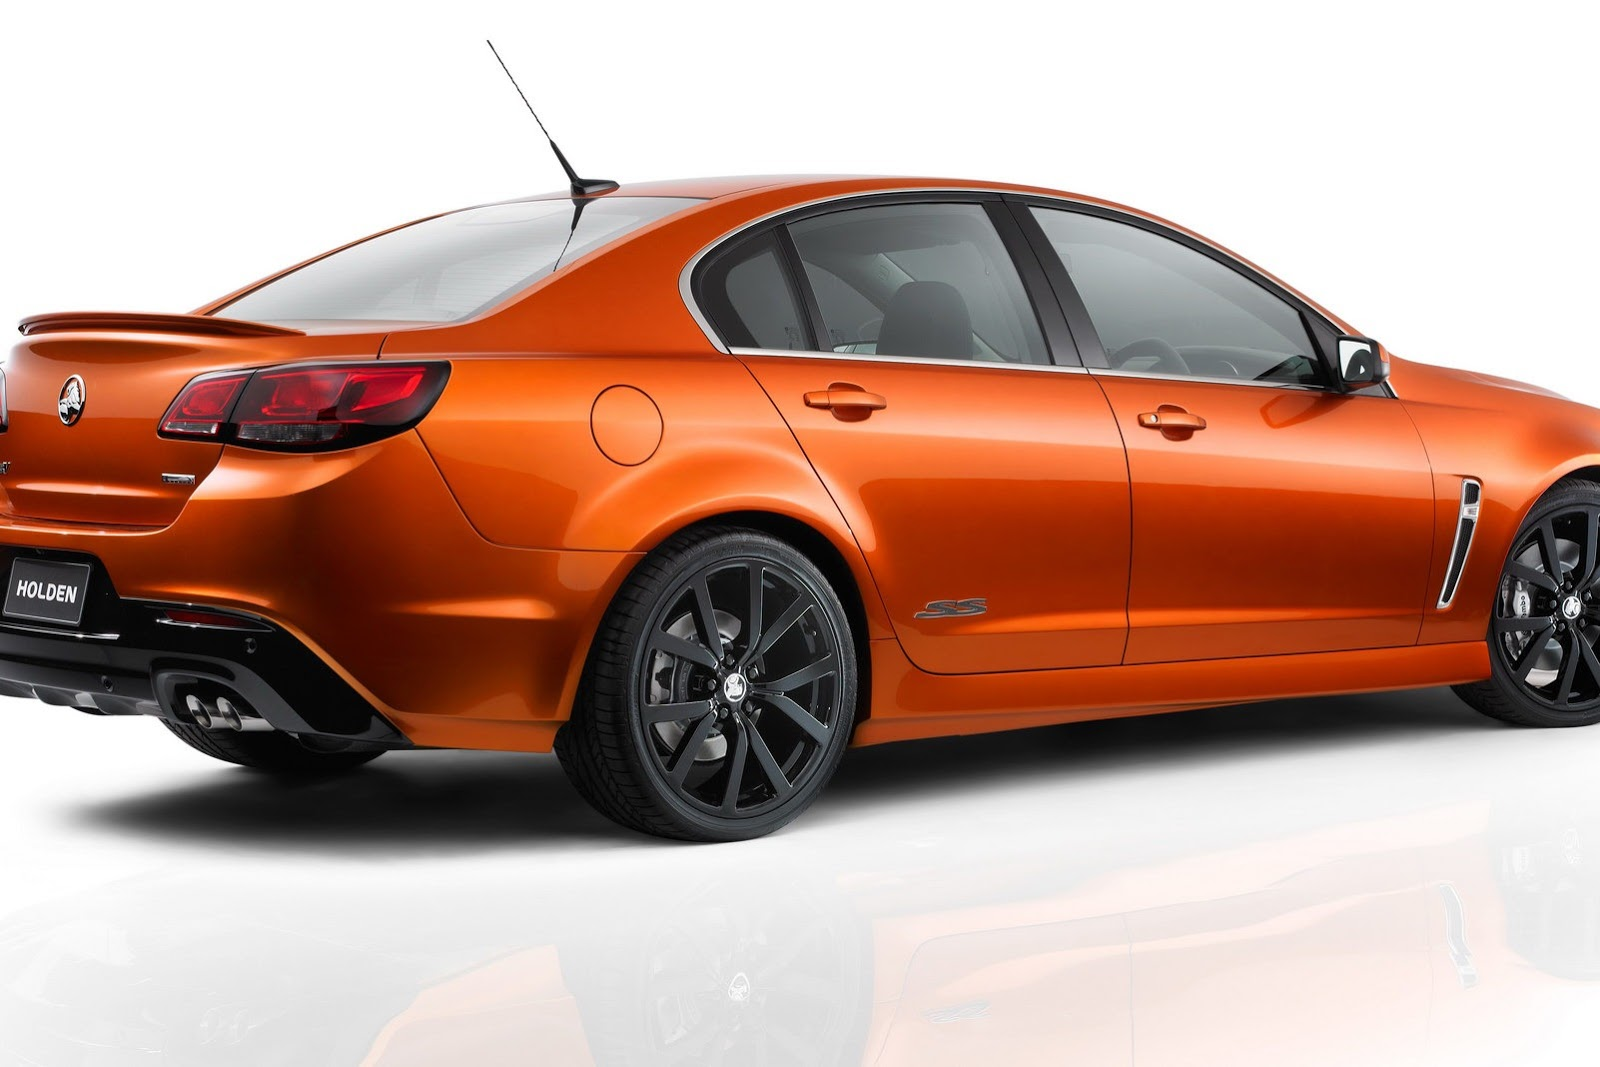 2014_holden_vf_commodore_ss_04